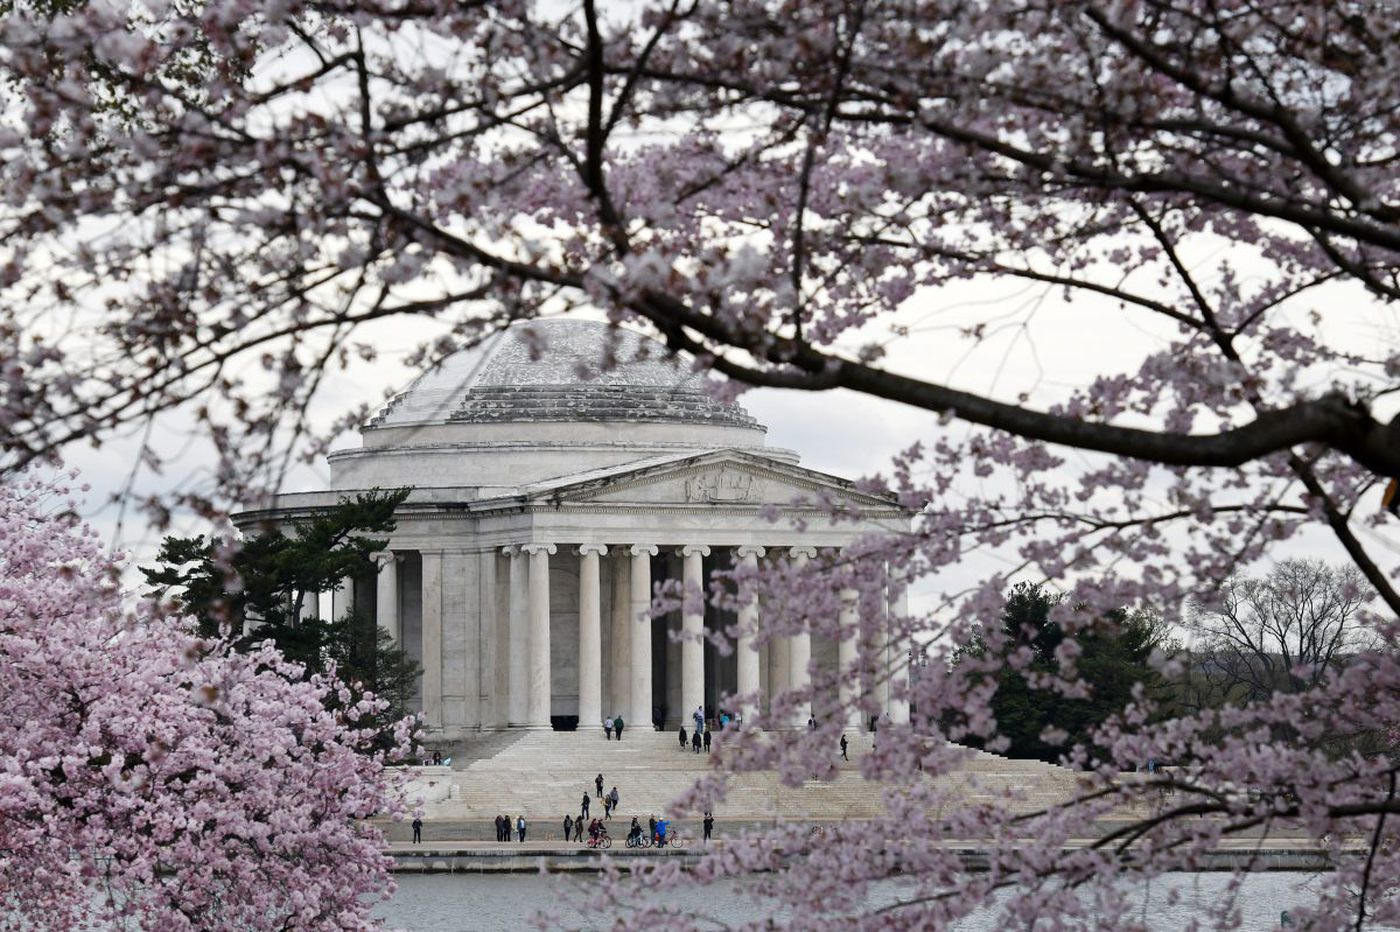 Peak for D.C. cherry blossoms? April 3 to 6